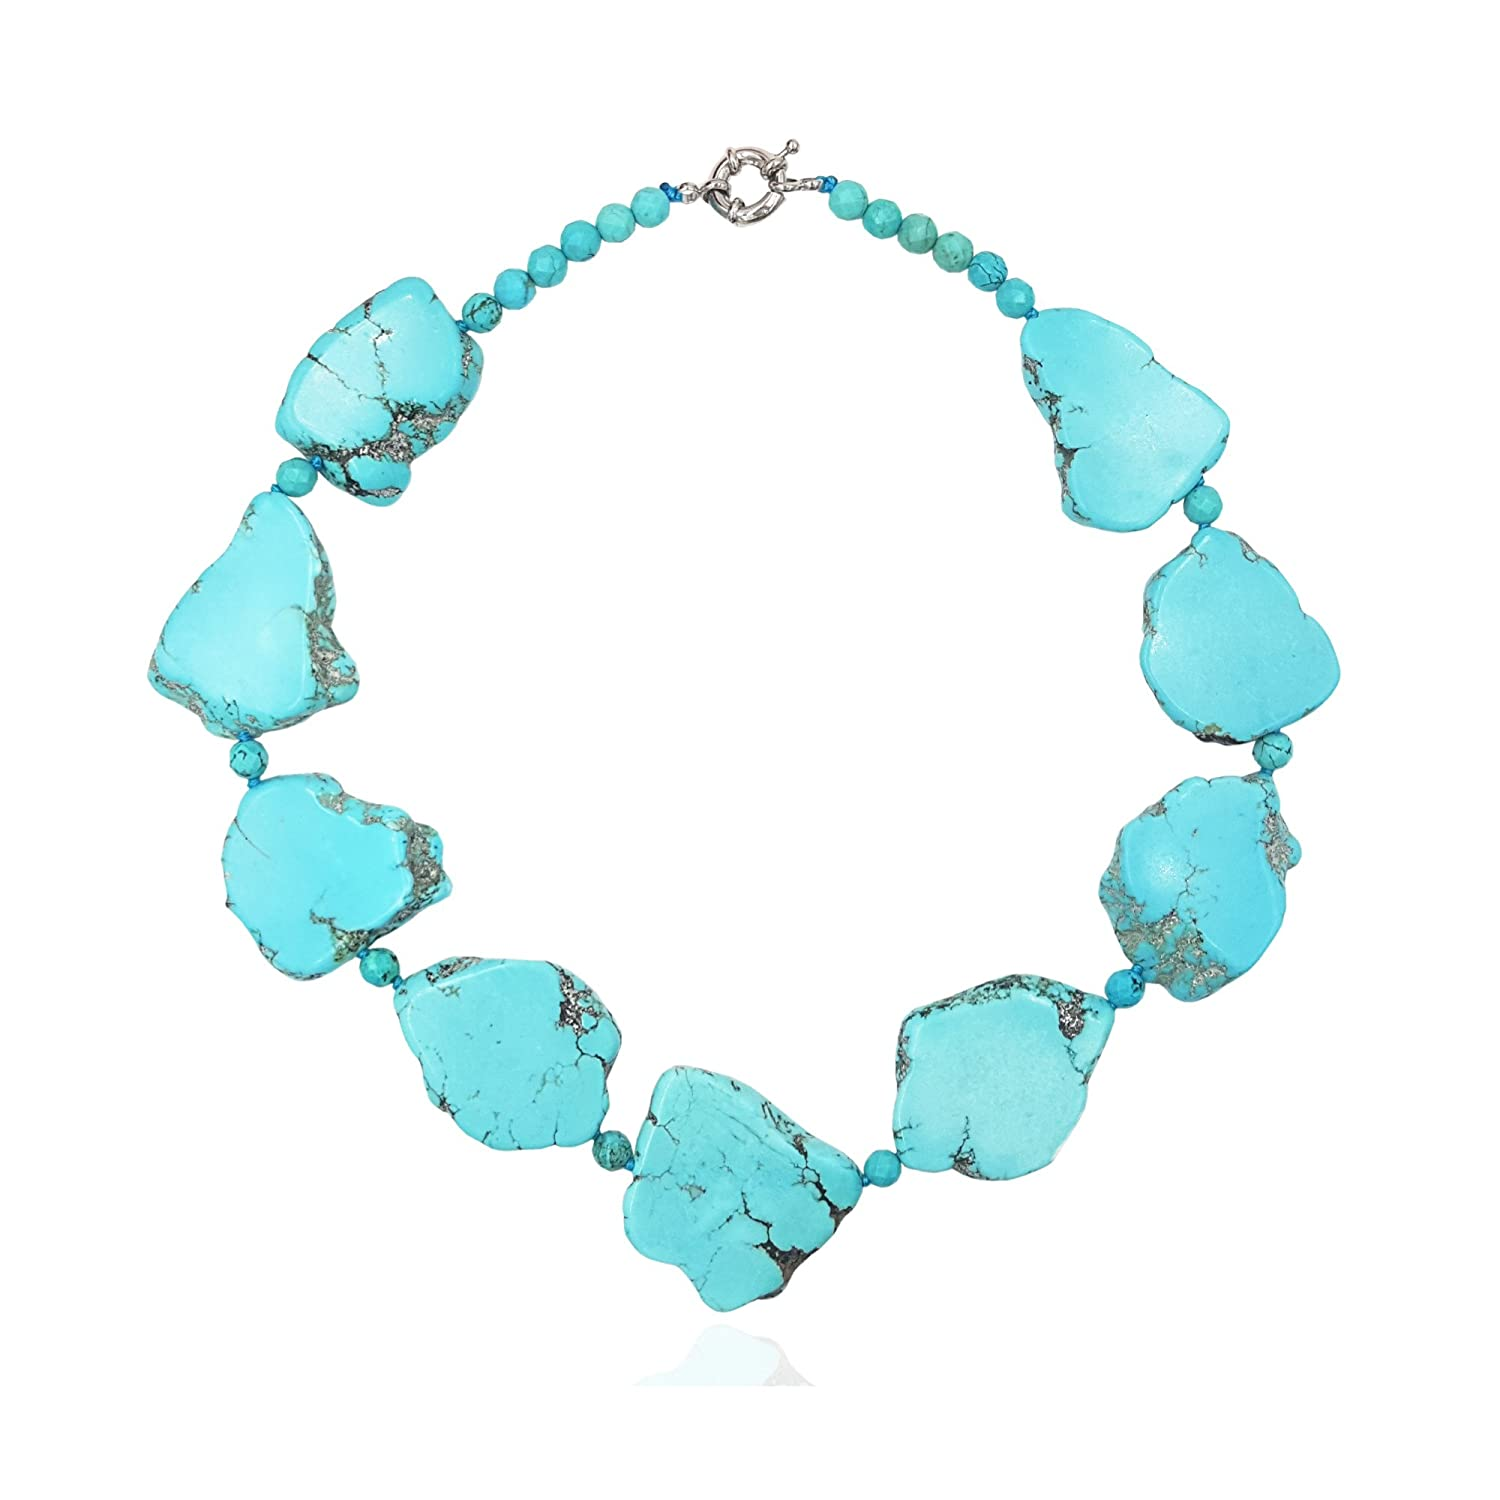 None Lii Ji 19 Big Irregular Shape Blue Simulated Turquoise Howlite Statement Necklace B07CWB7X8R_US